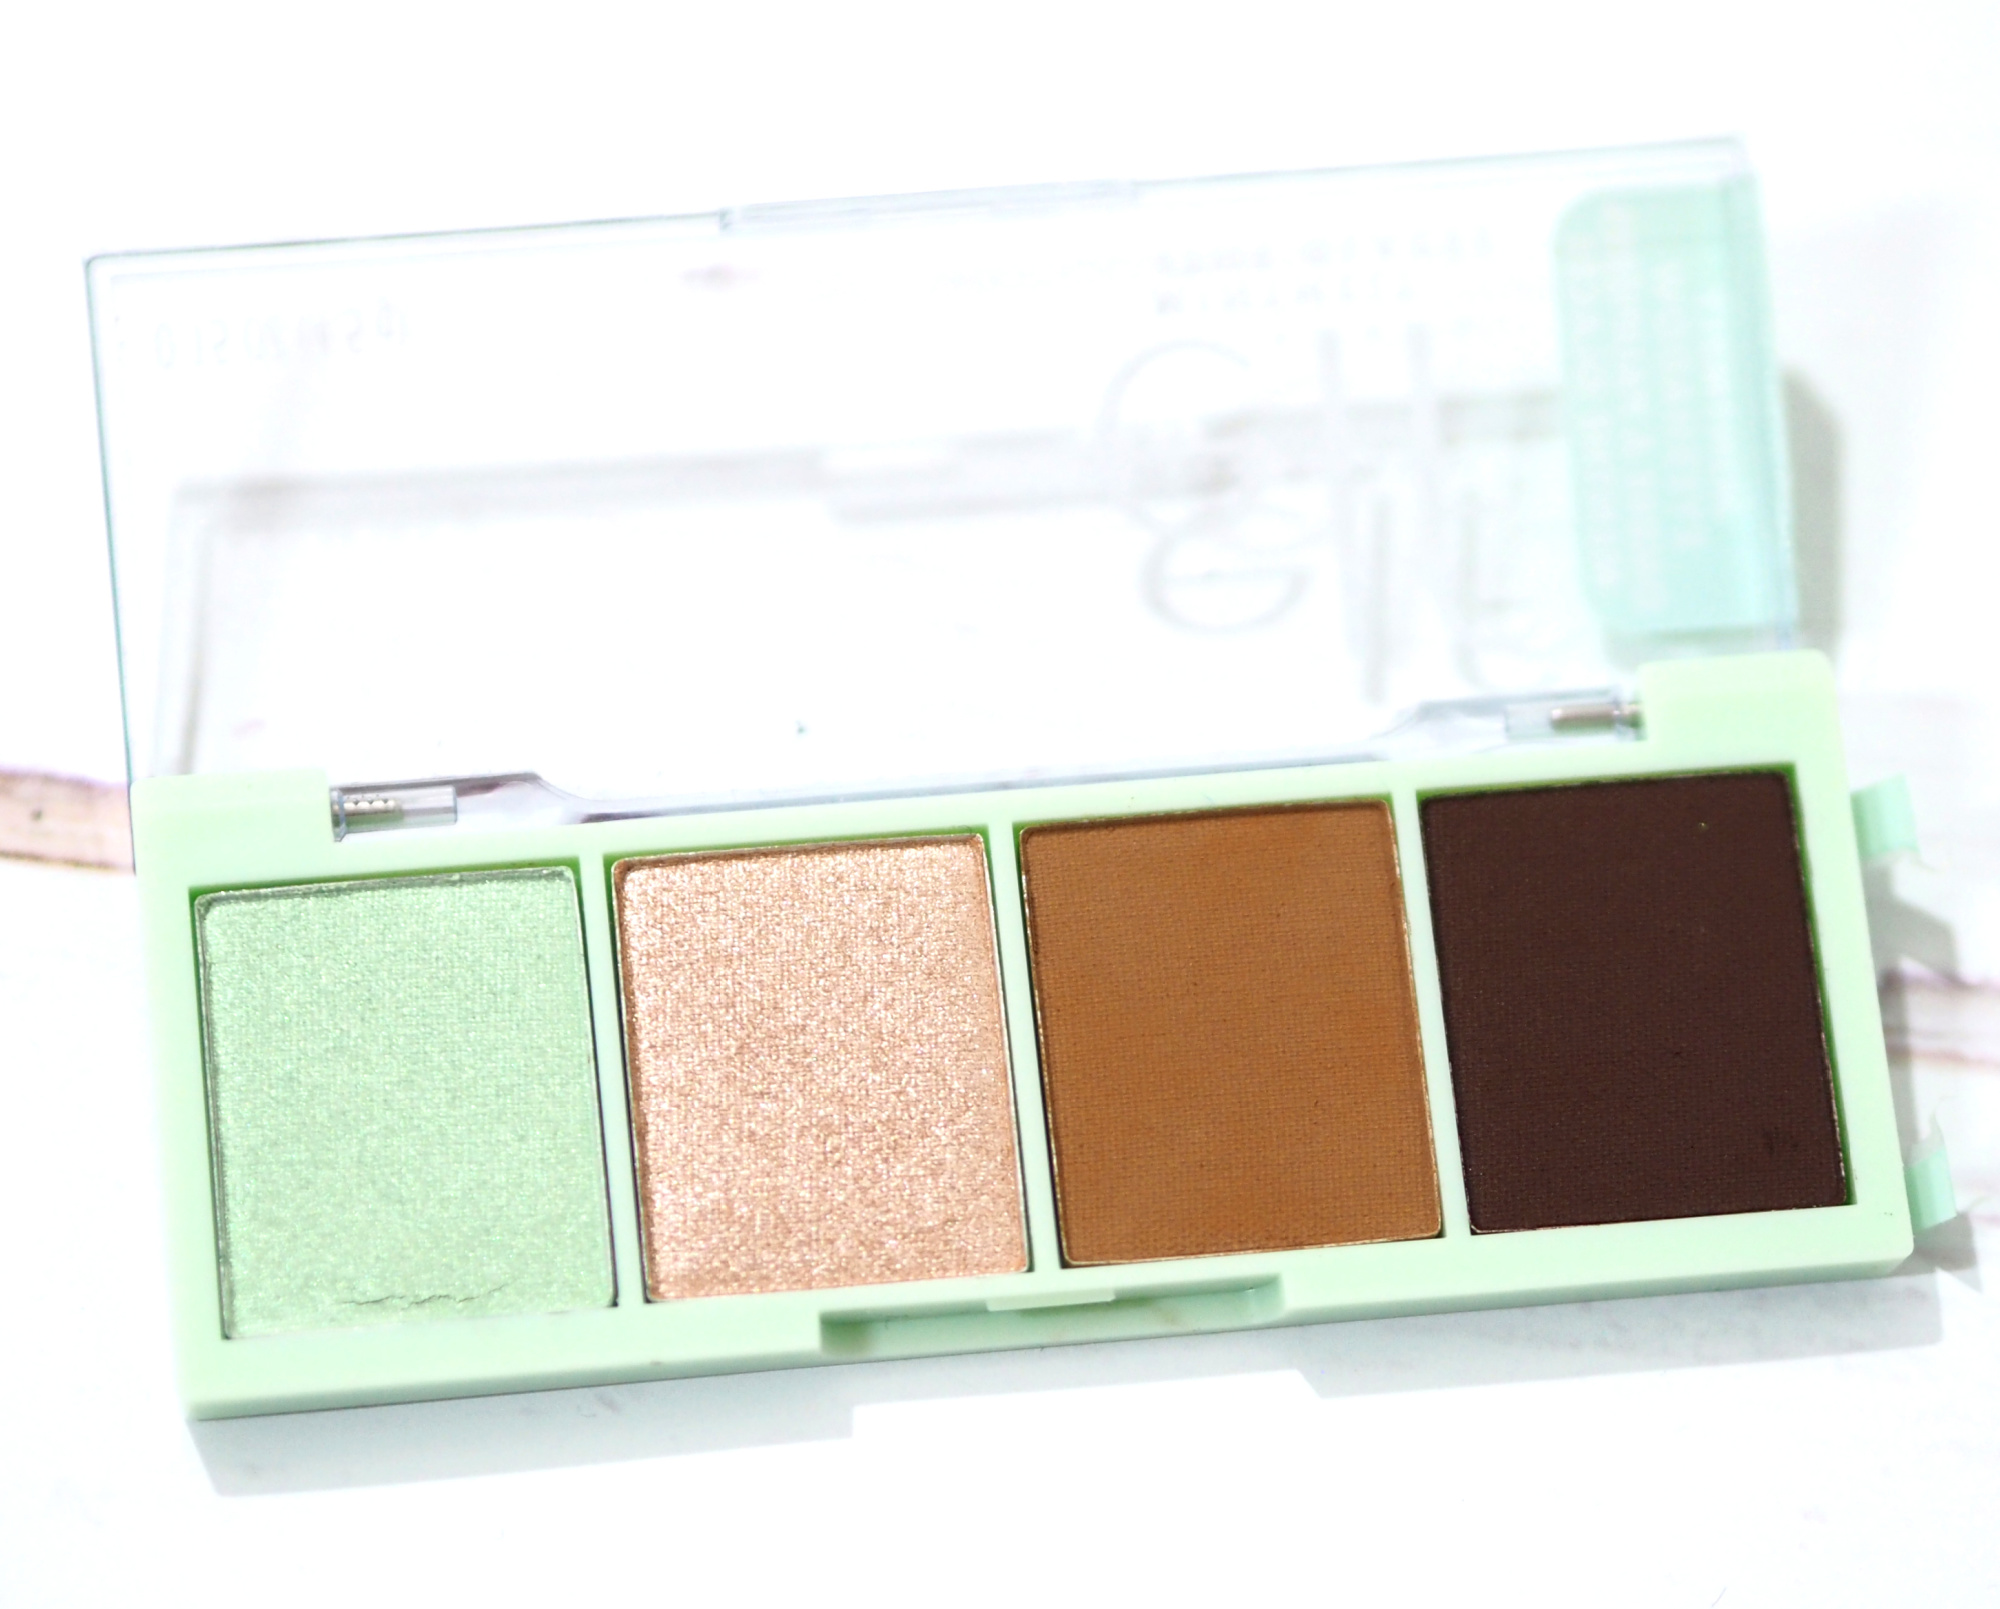 ELF Chocolate Mint Eyeshadow Palette Review / Swatches